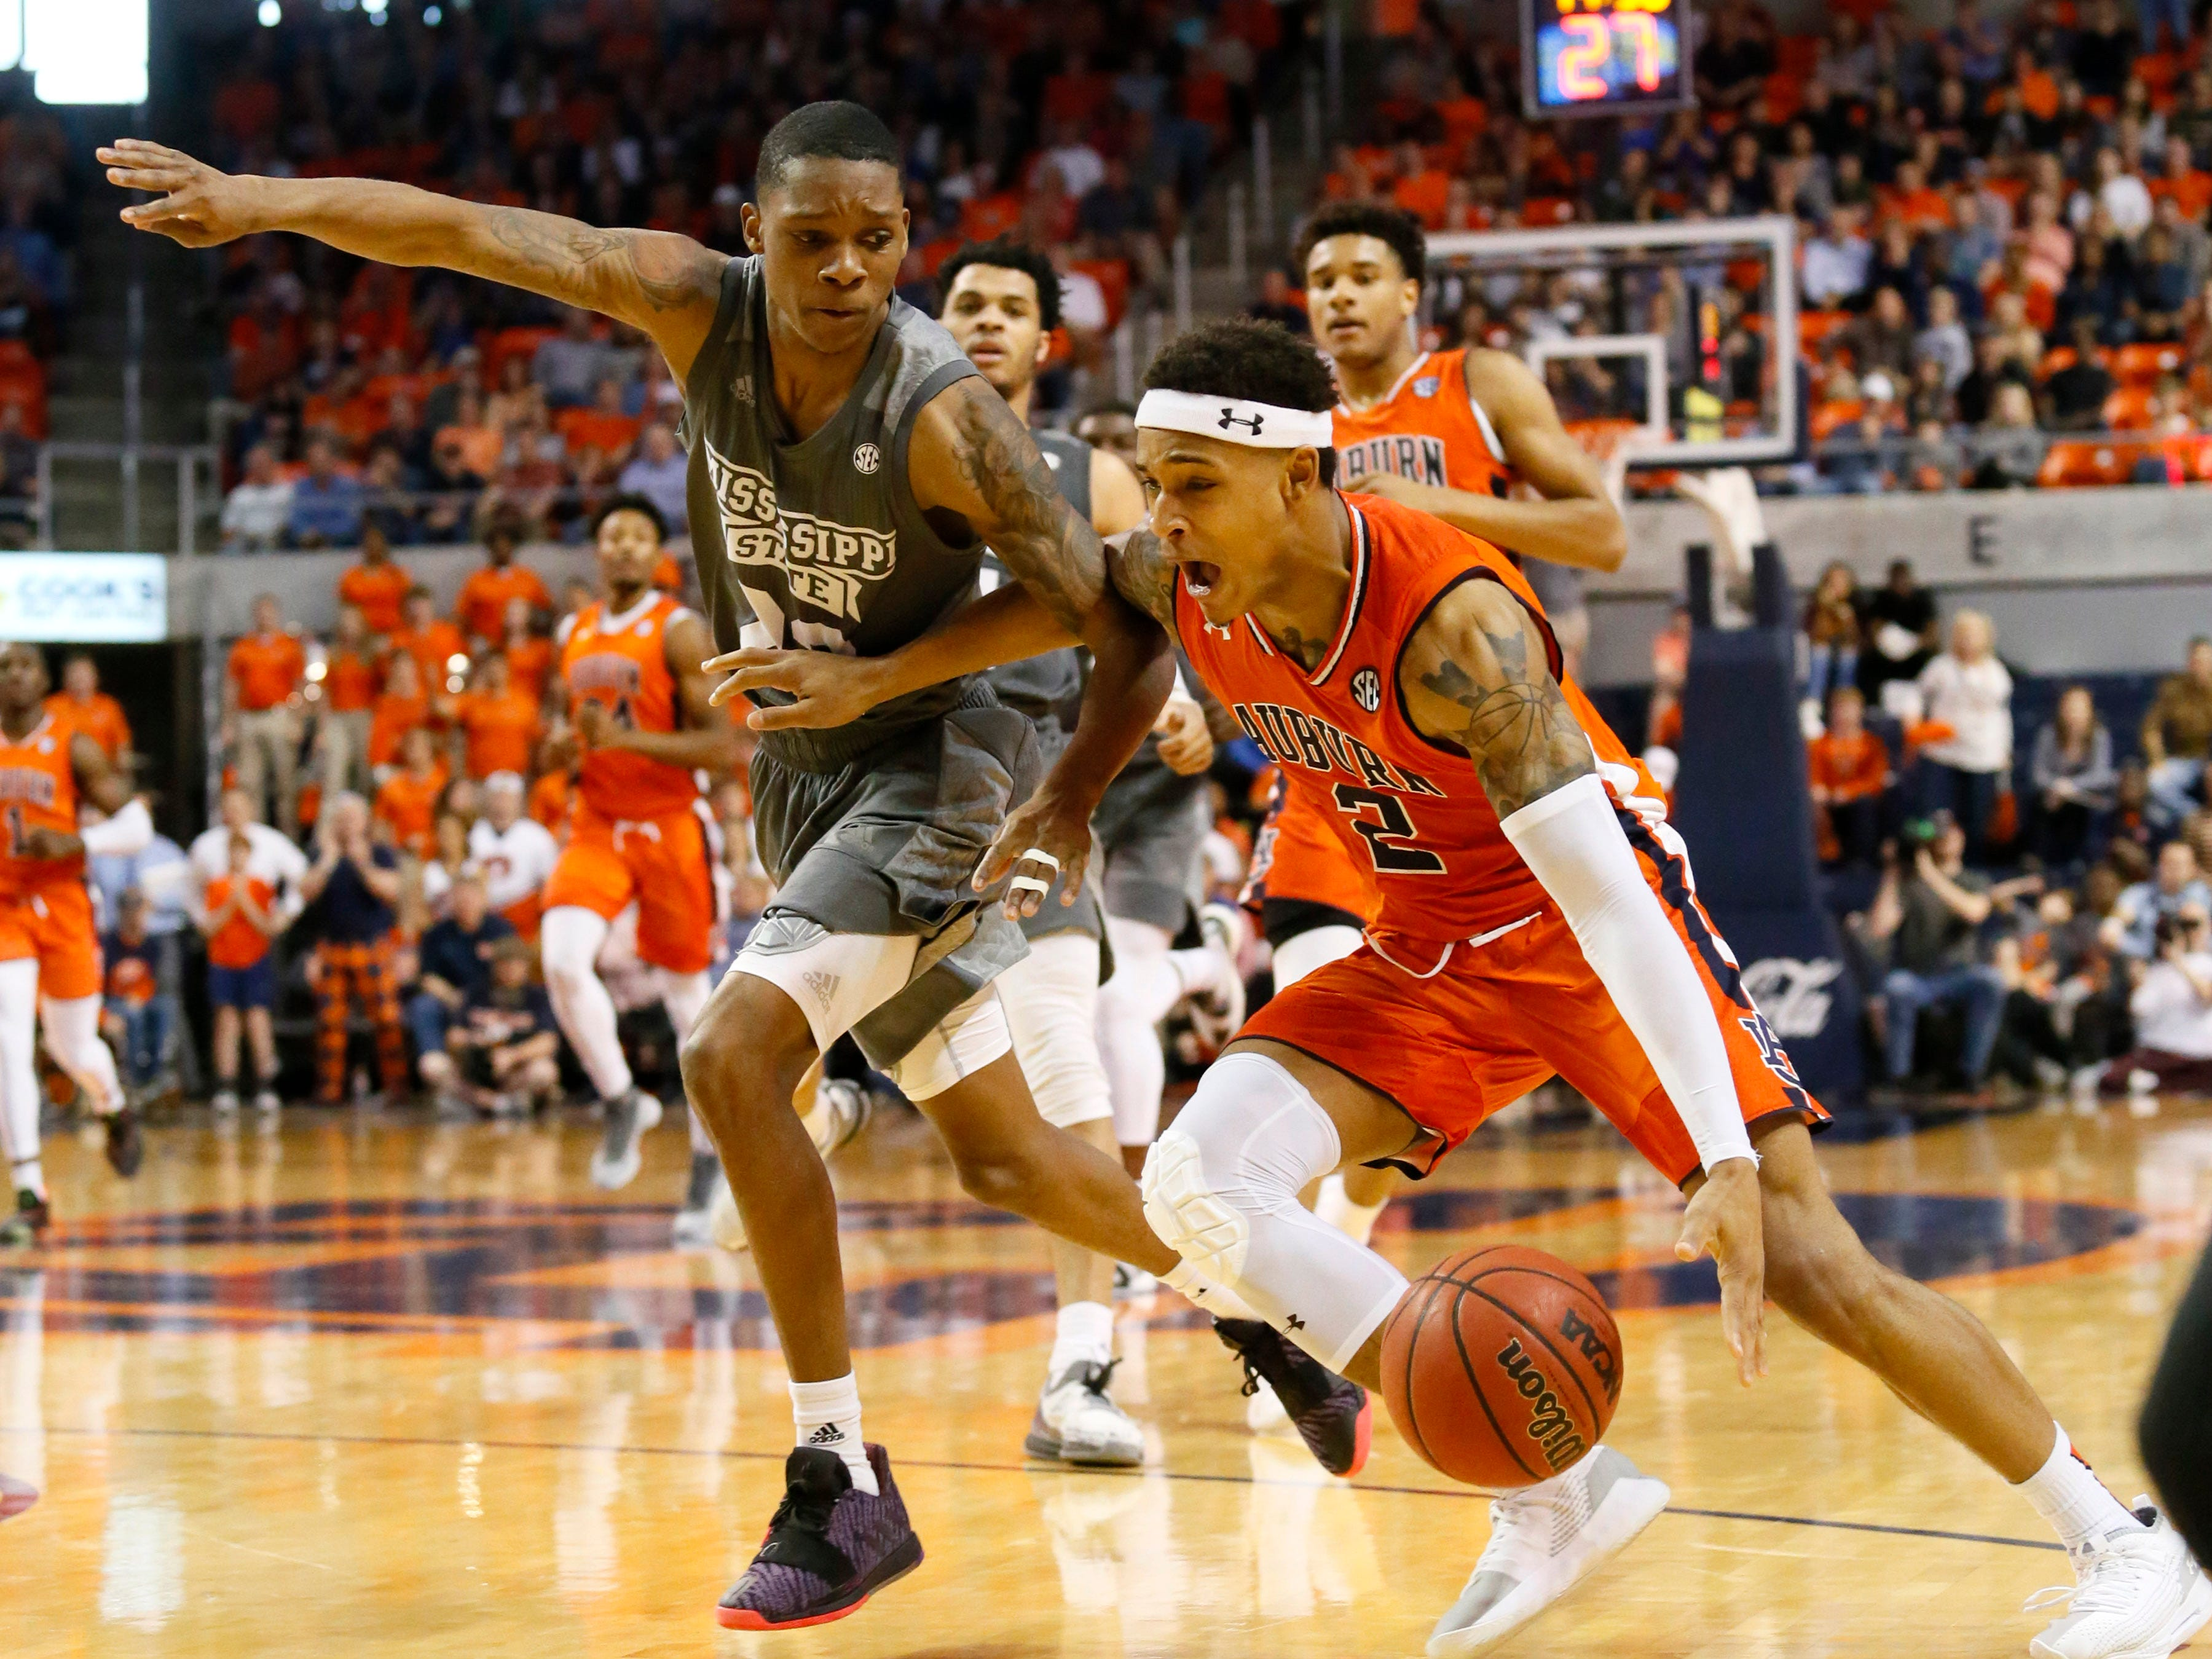 Auburn guard Bryce Brown drives past Mississippi State guard Tyson Carter (23) on Saturday, March 2, 2019, in Auburn, Ala.